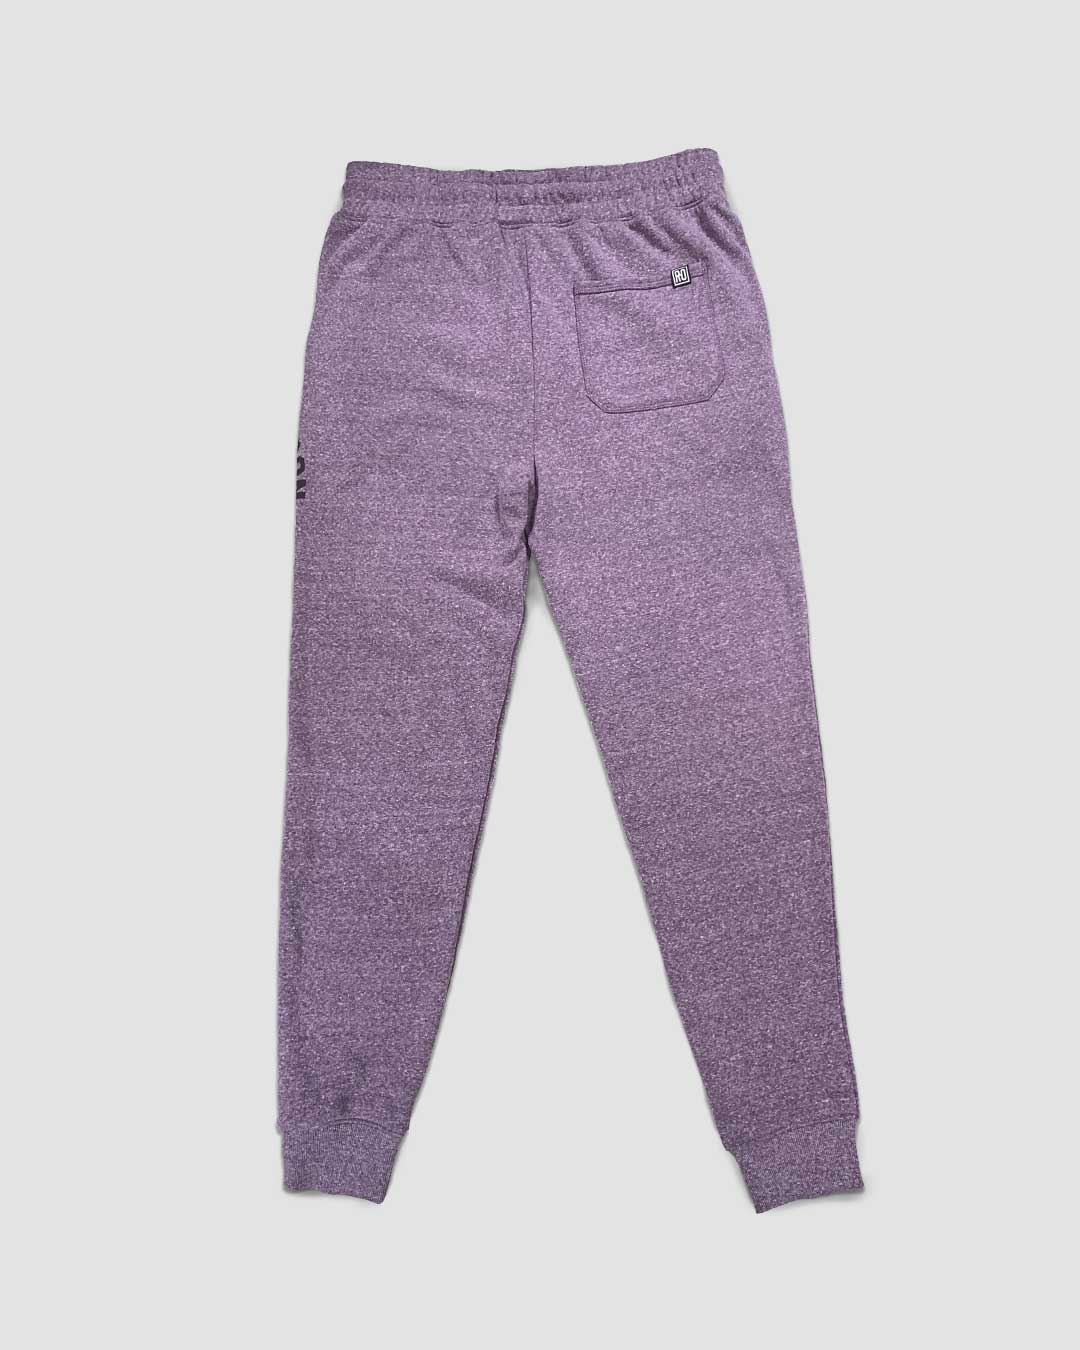 Jack Johnson Ground Breakers Sweatpants - Roots of Inc dba Roots of Fight